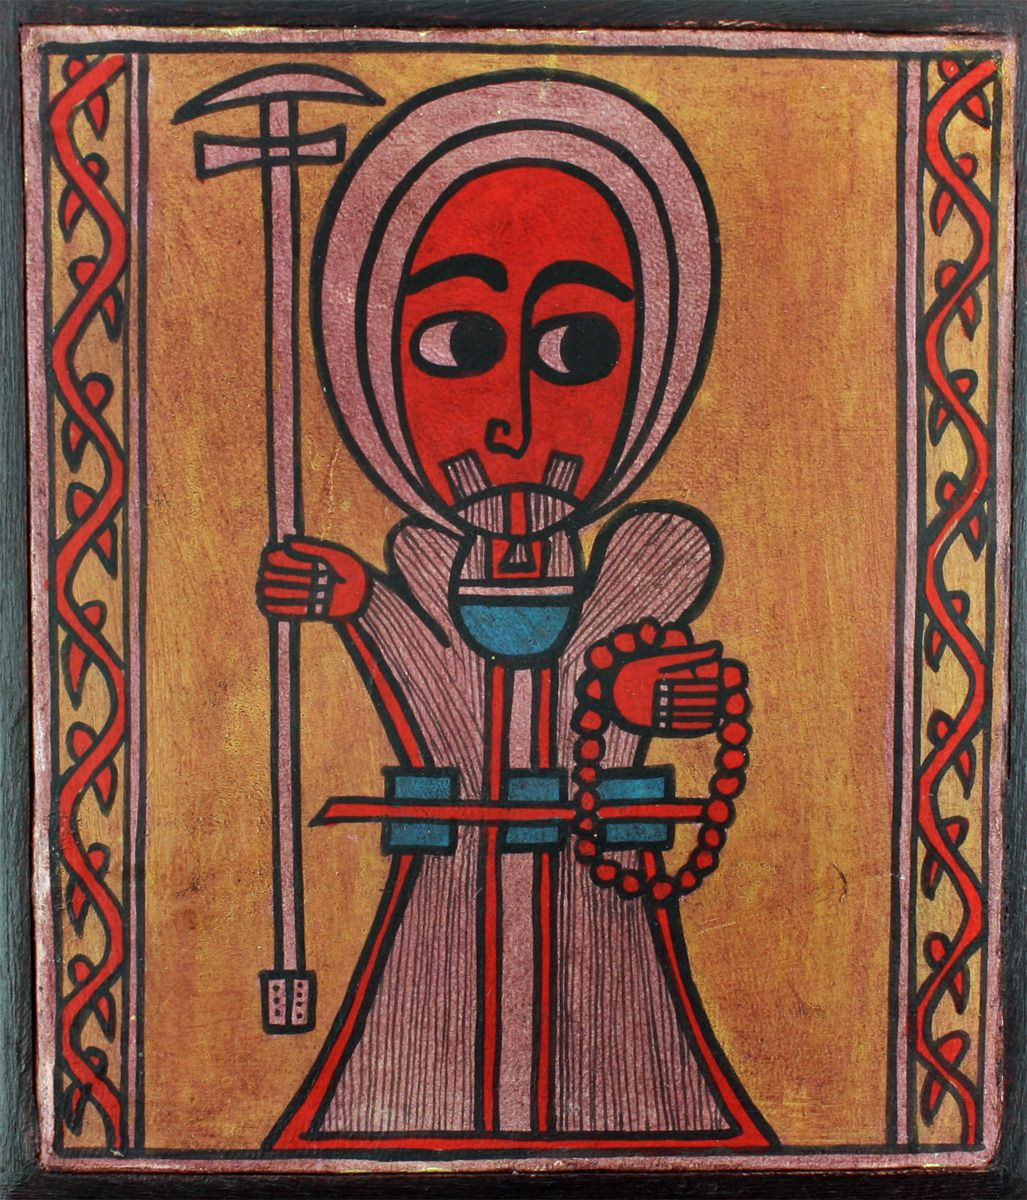 Ethiopia Addis Ababa Traditional Ethiopian Paintings And Folk Art In 2019 African